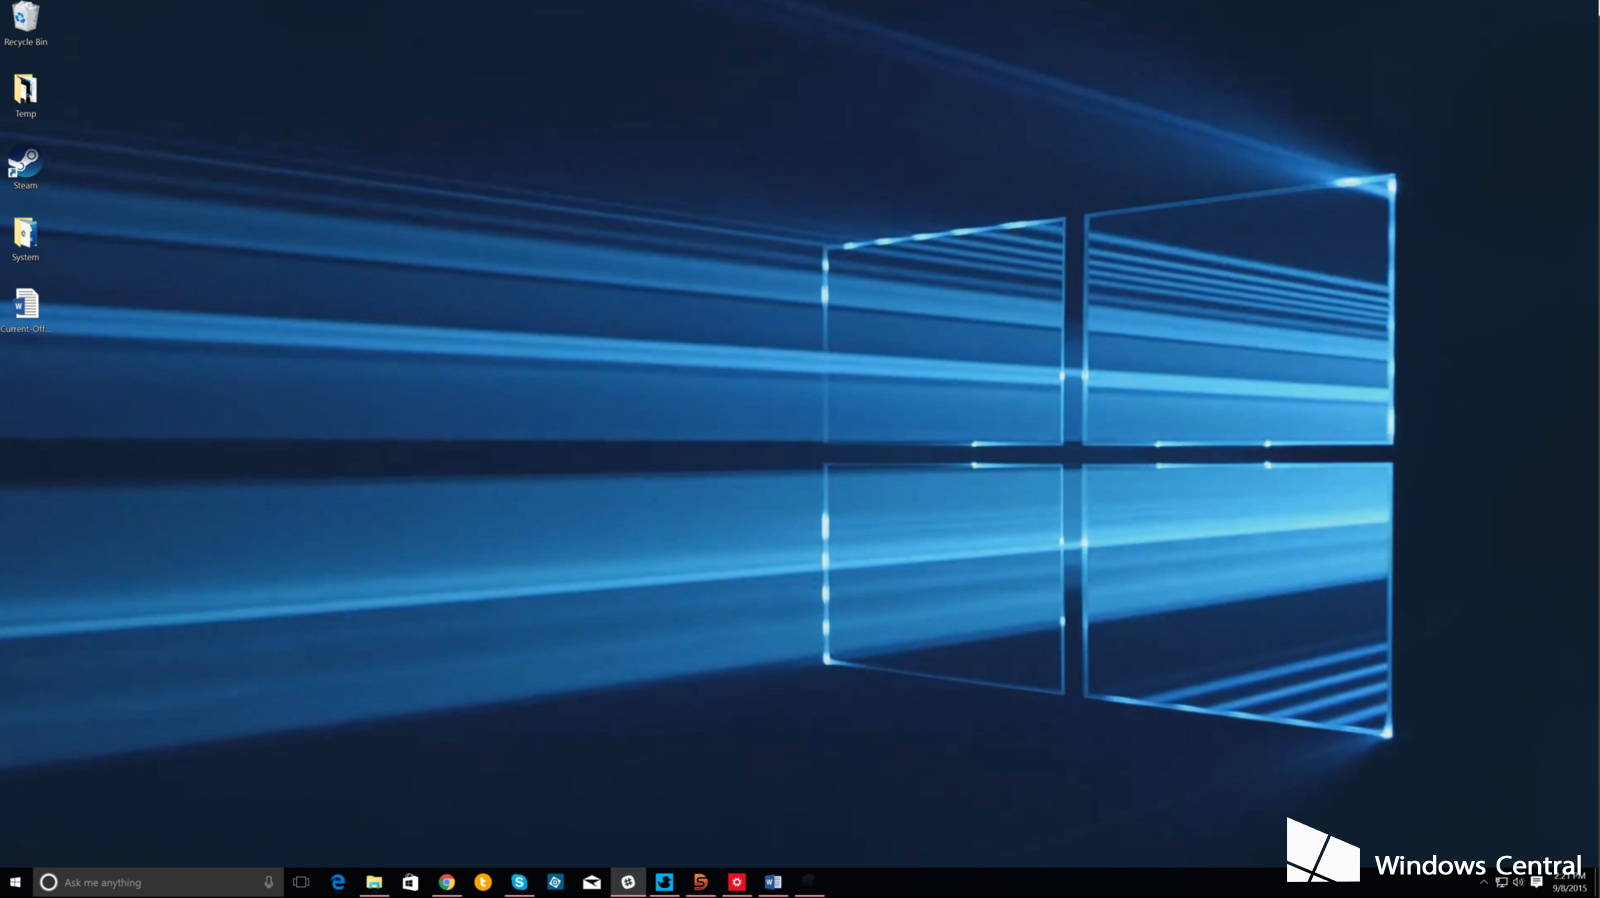 Animated clipart windows 10 clipground - How to get moving wallpapers on pc ...